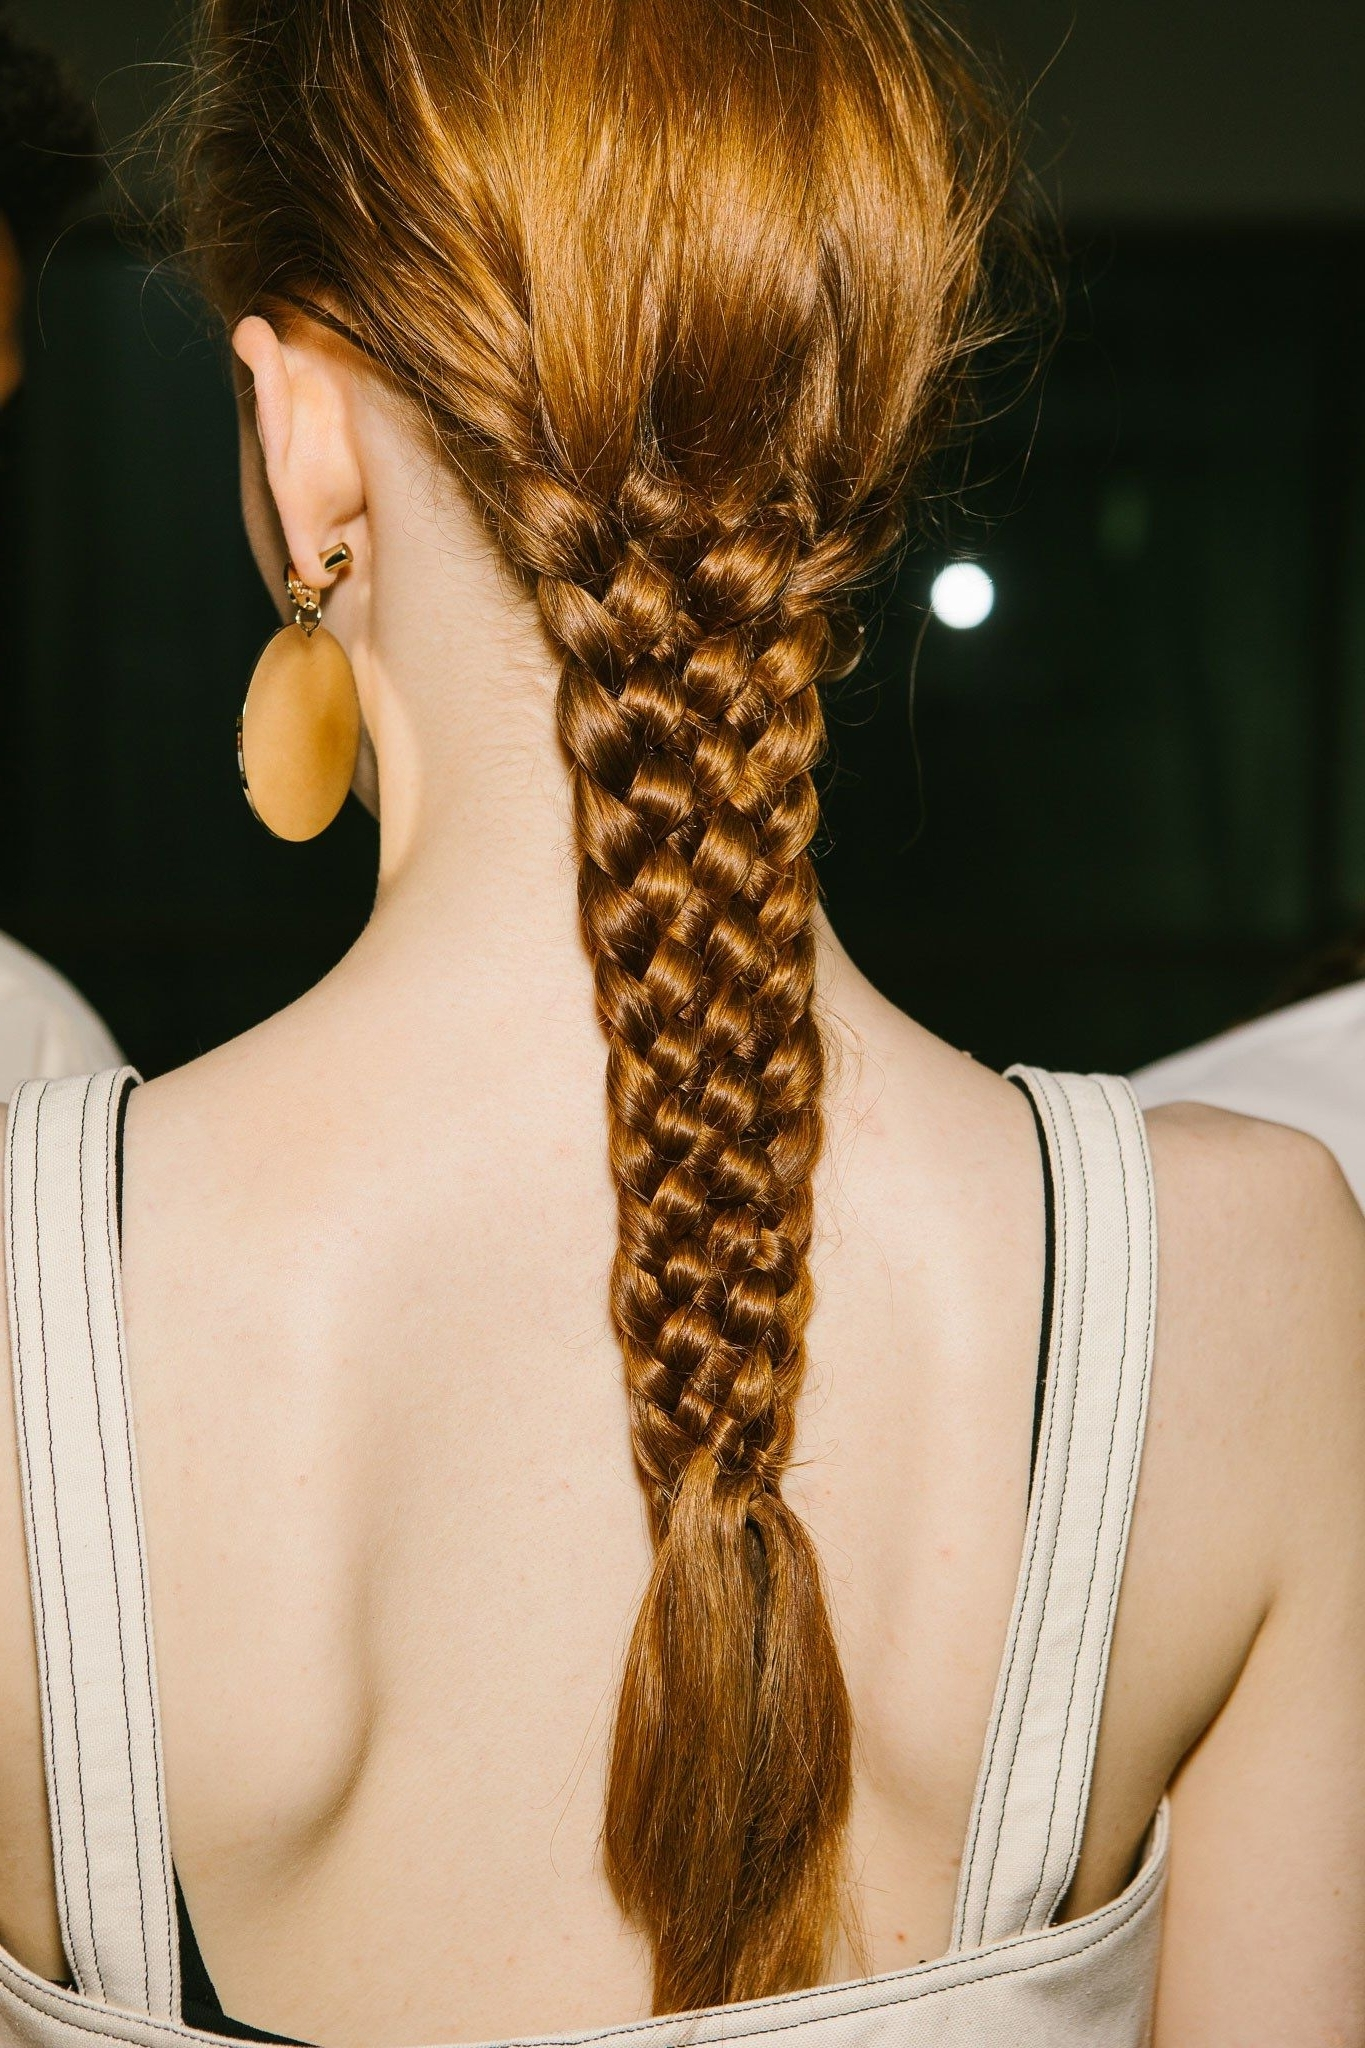 Well Known Brunette Macrame Braid Hairstyles With Jil Sander Just Won The Braid Game (View 18 of 20)